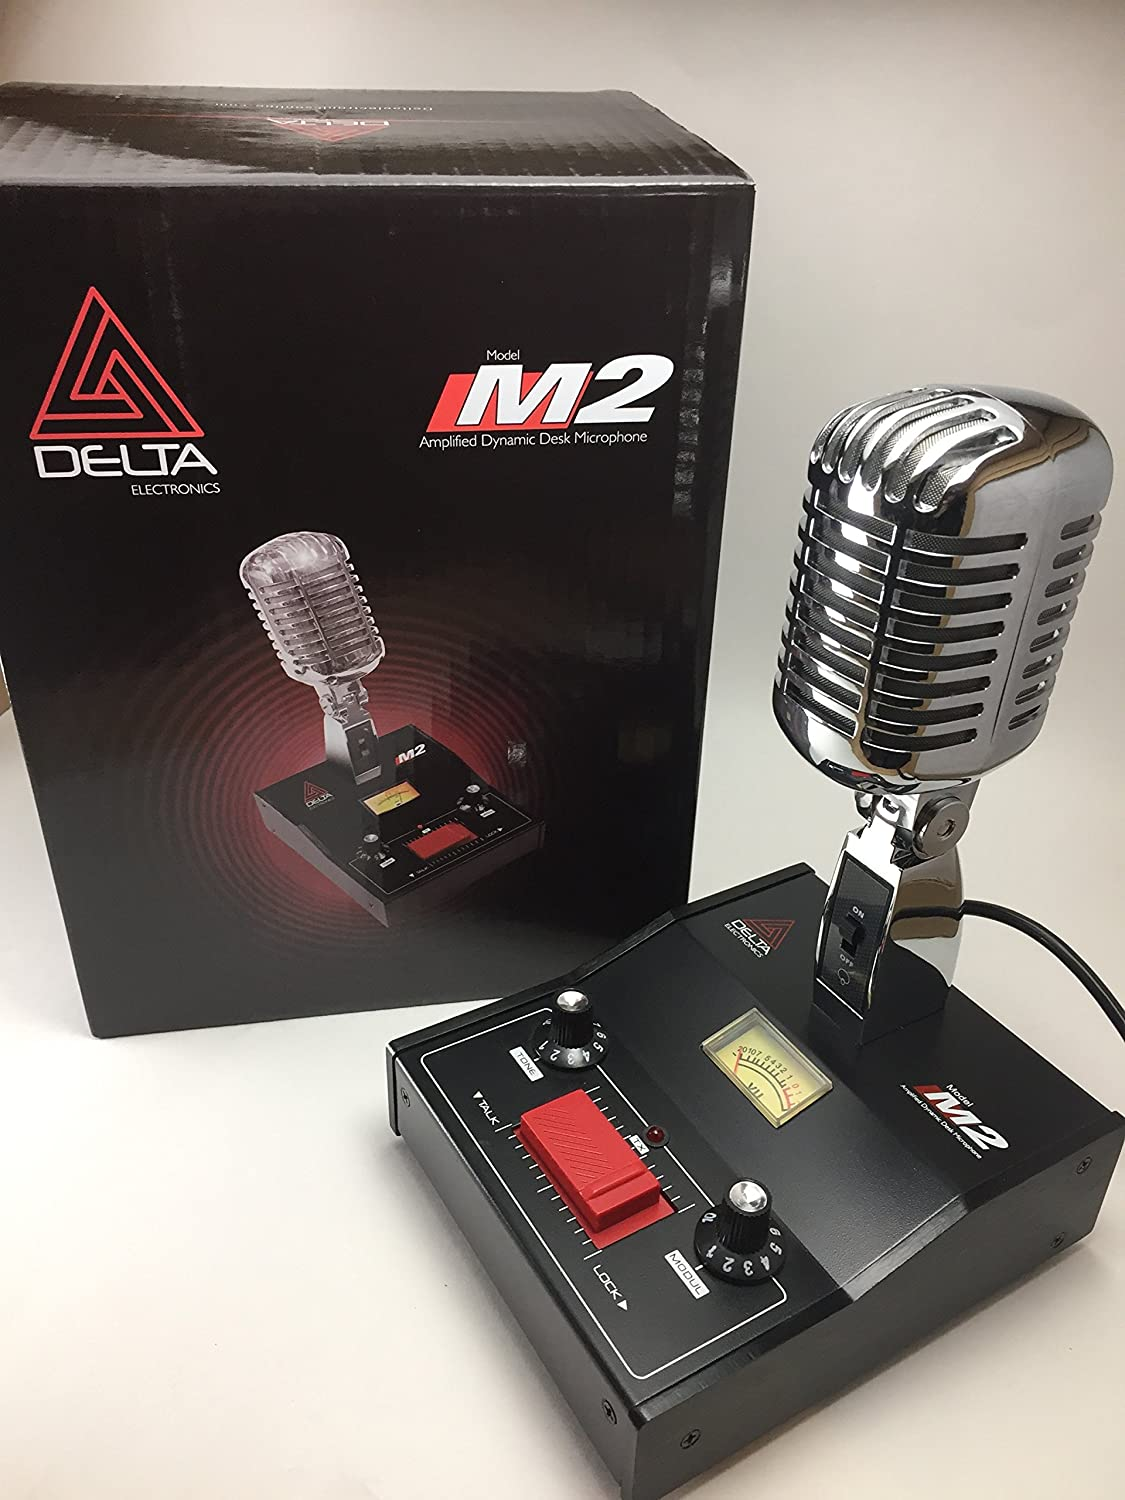 Delta M2 Amplified Dynamic Power Base Microphone 4 Pin Cobra 2000 Mic Wiring Diagram Cb Ham Musical Instruments